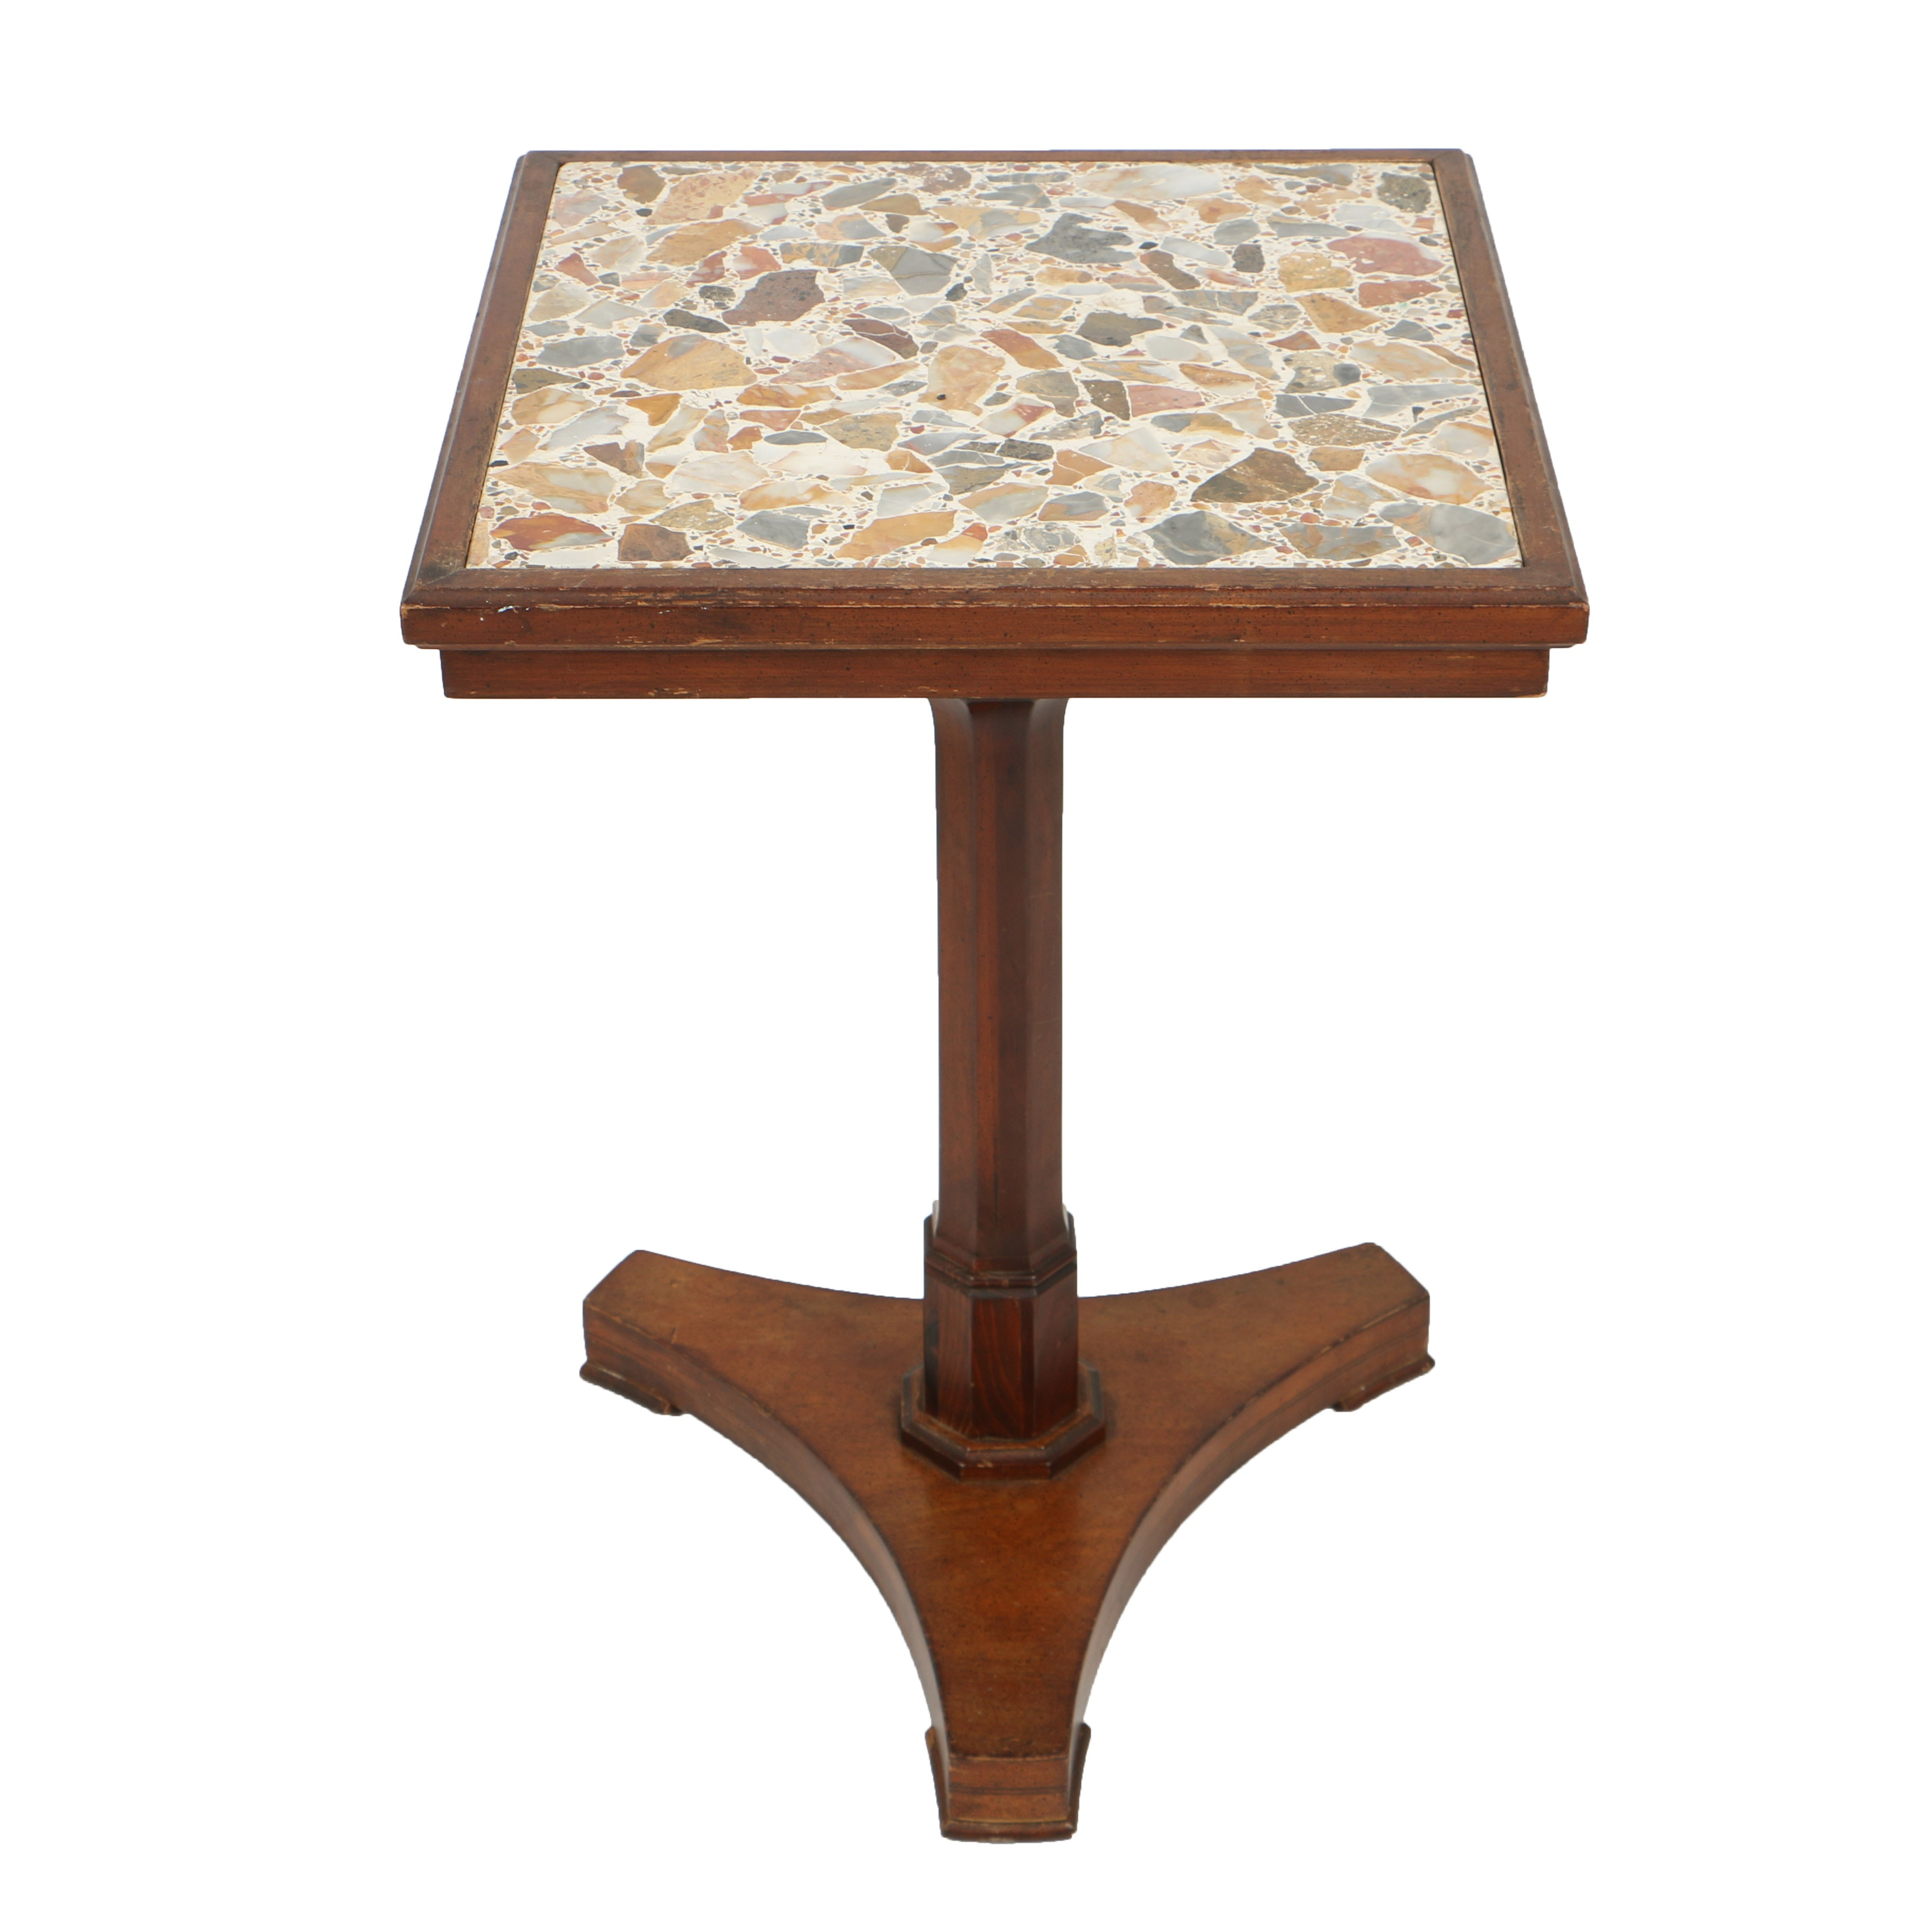 Vintage Side Table with Terrazzo Top by Danby